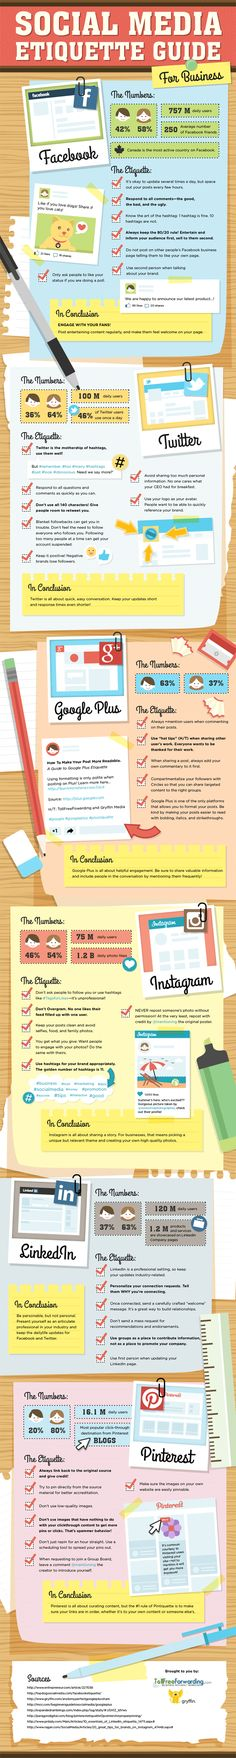 "The Ultimate Social Media Etiquette Guide for Businesses [Infographic]  So easy to ""do it right""!  http://facebook.com/smallbusinesswebsolutions!"